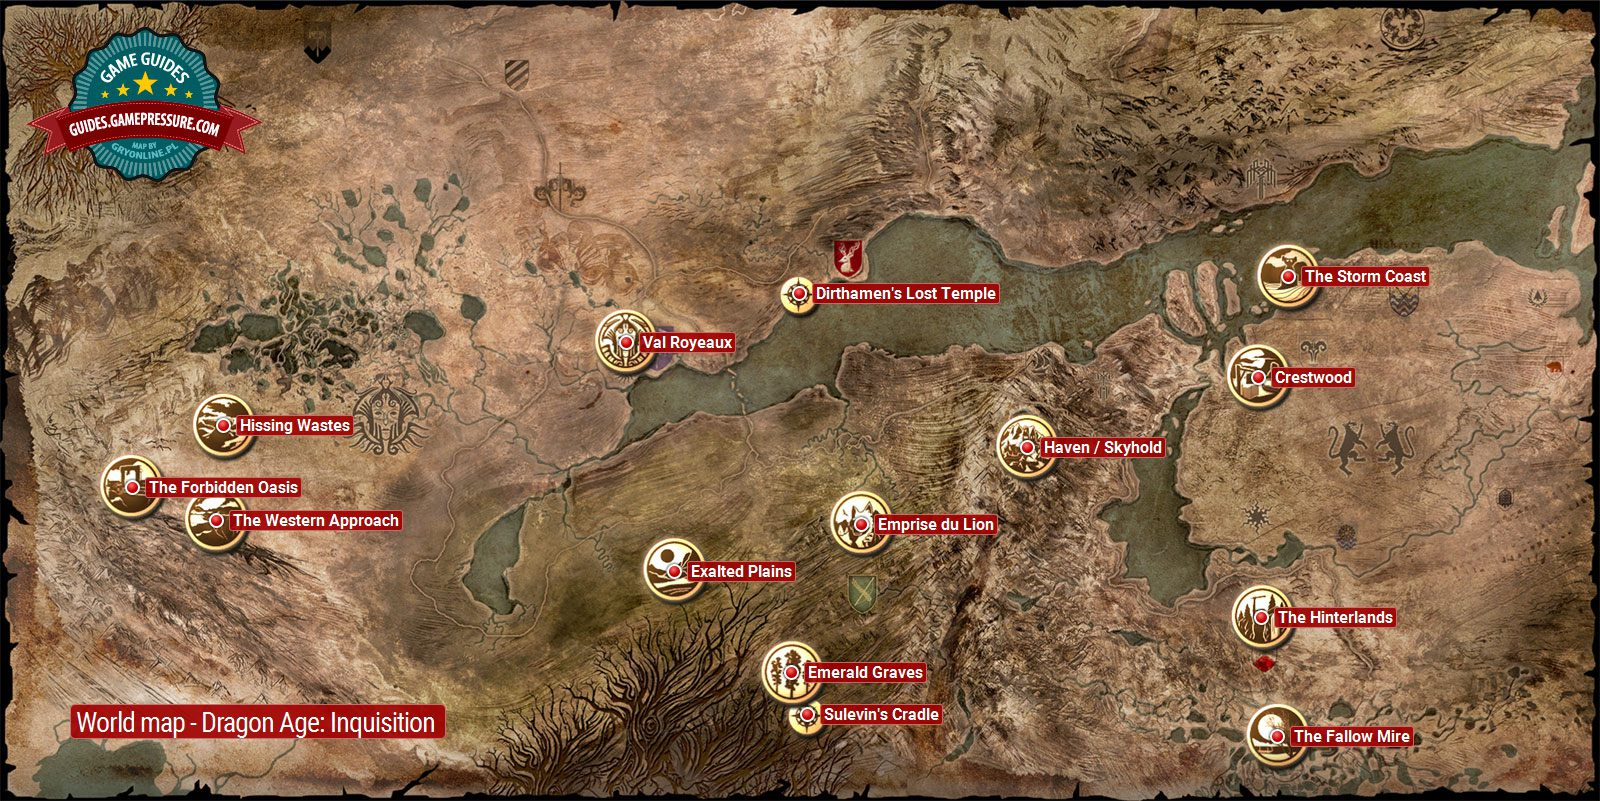 World map - Dragon Age: Inquisition